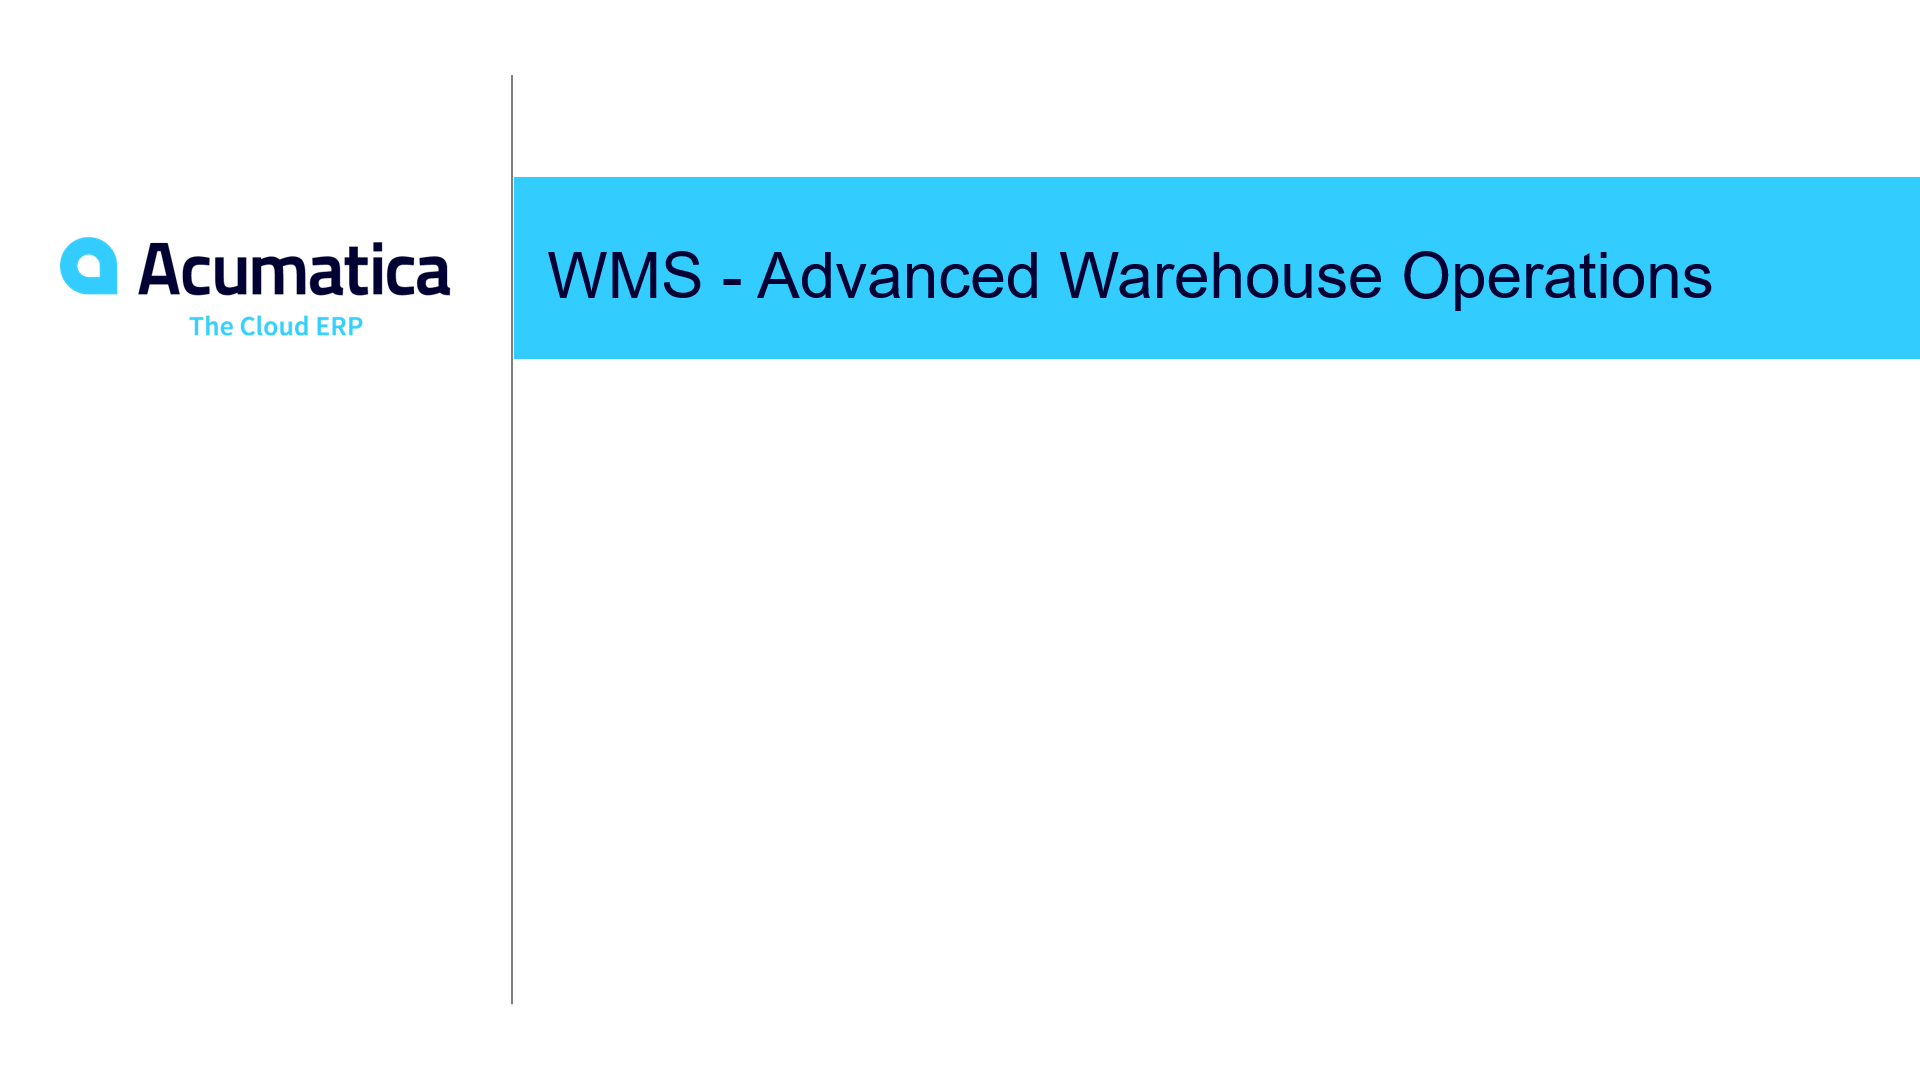 WMS - Advanced Warehouse Operations